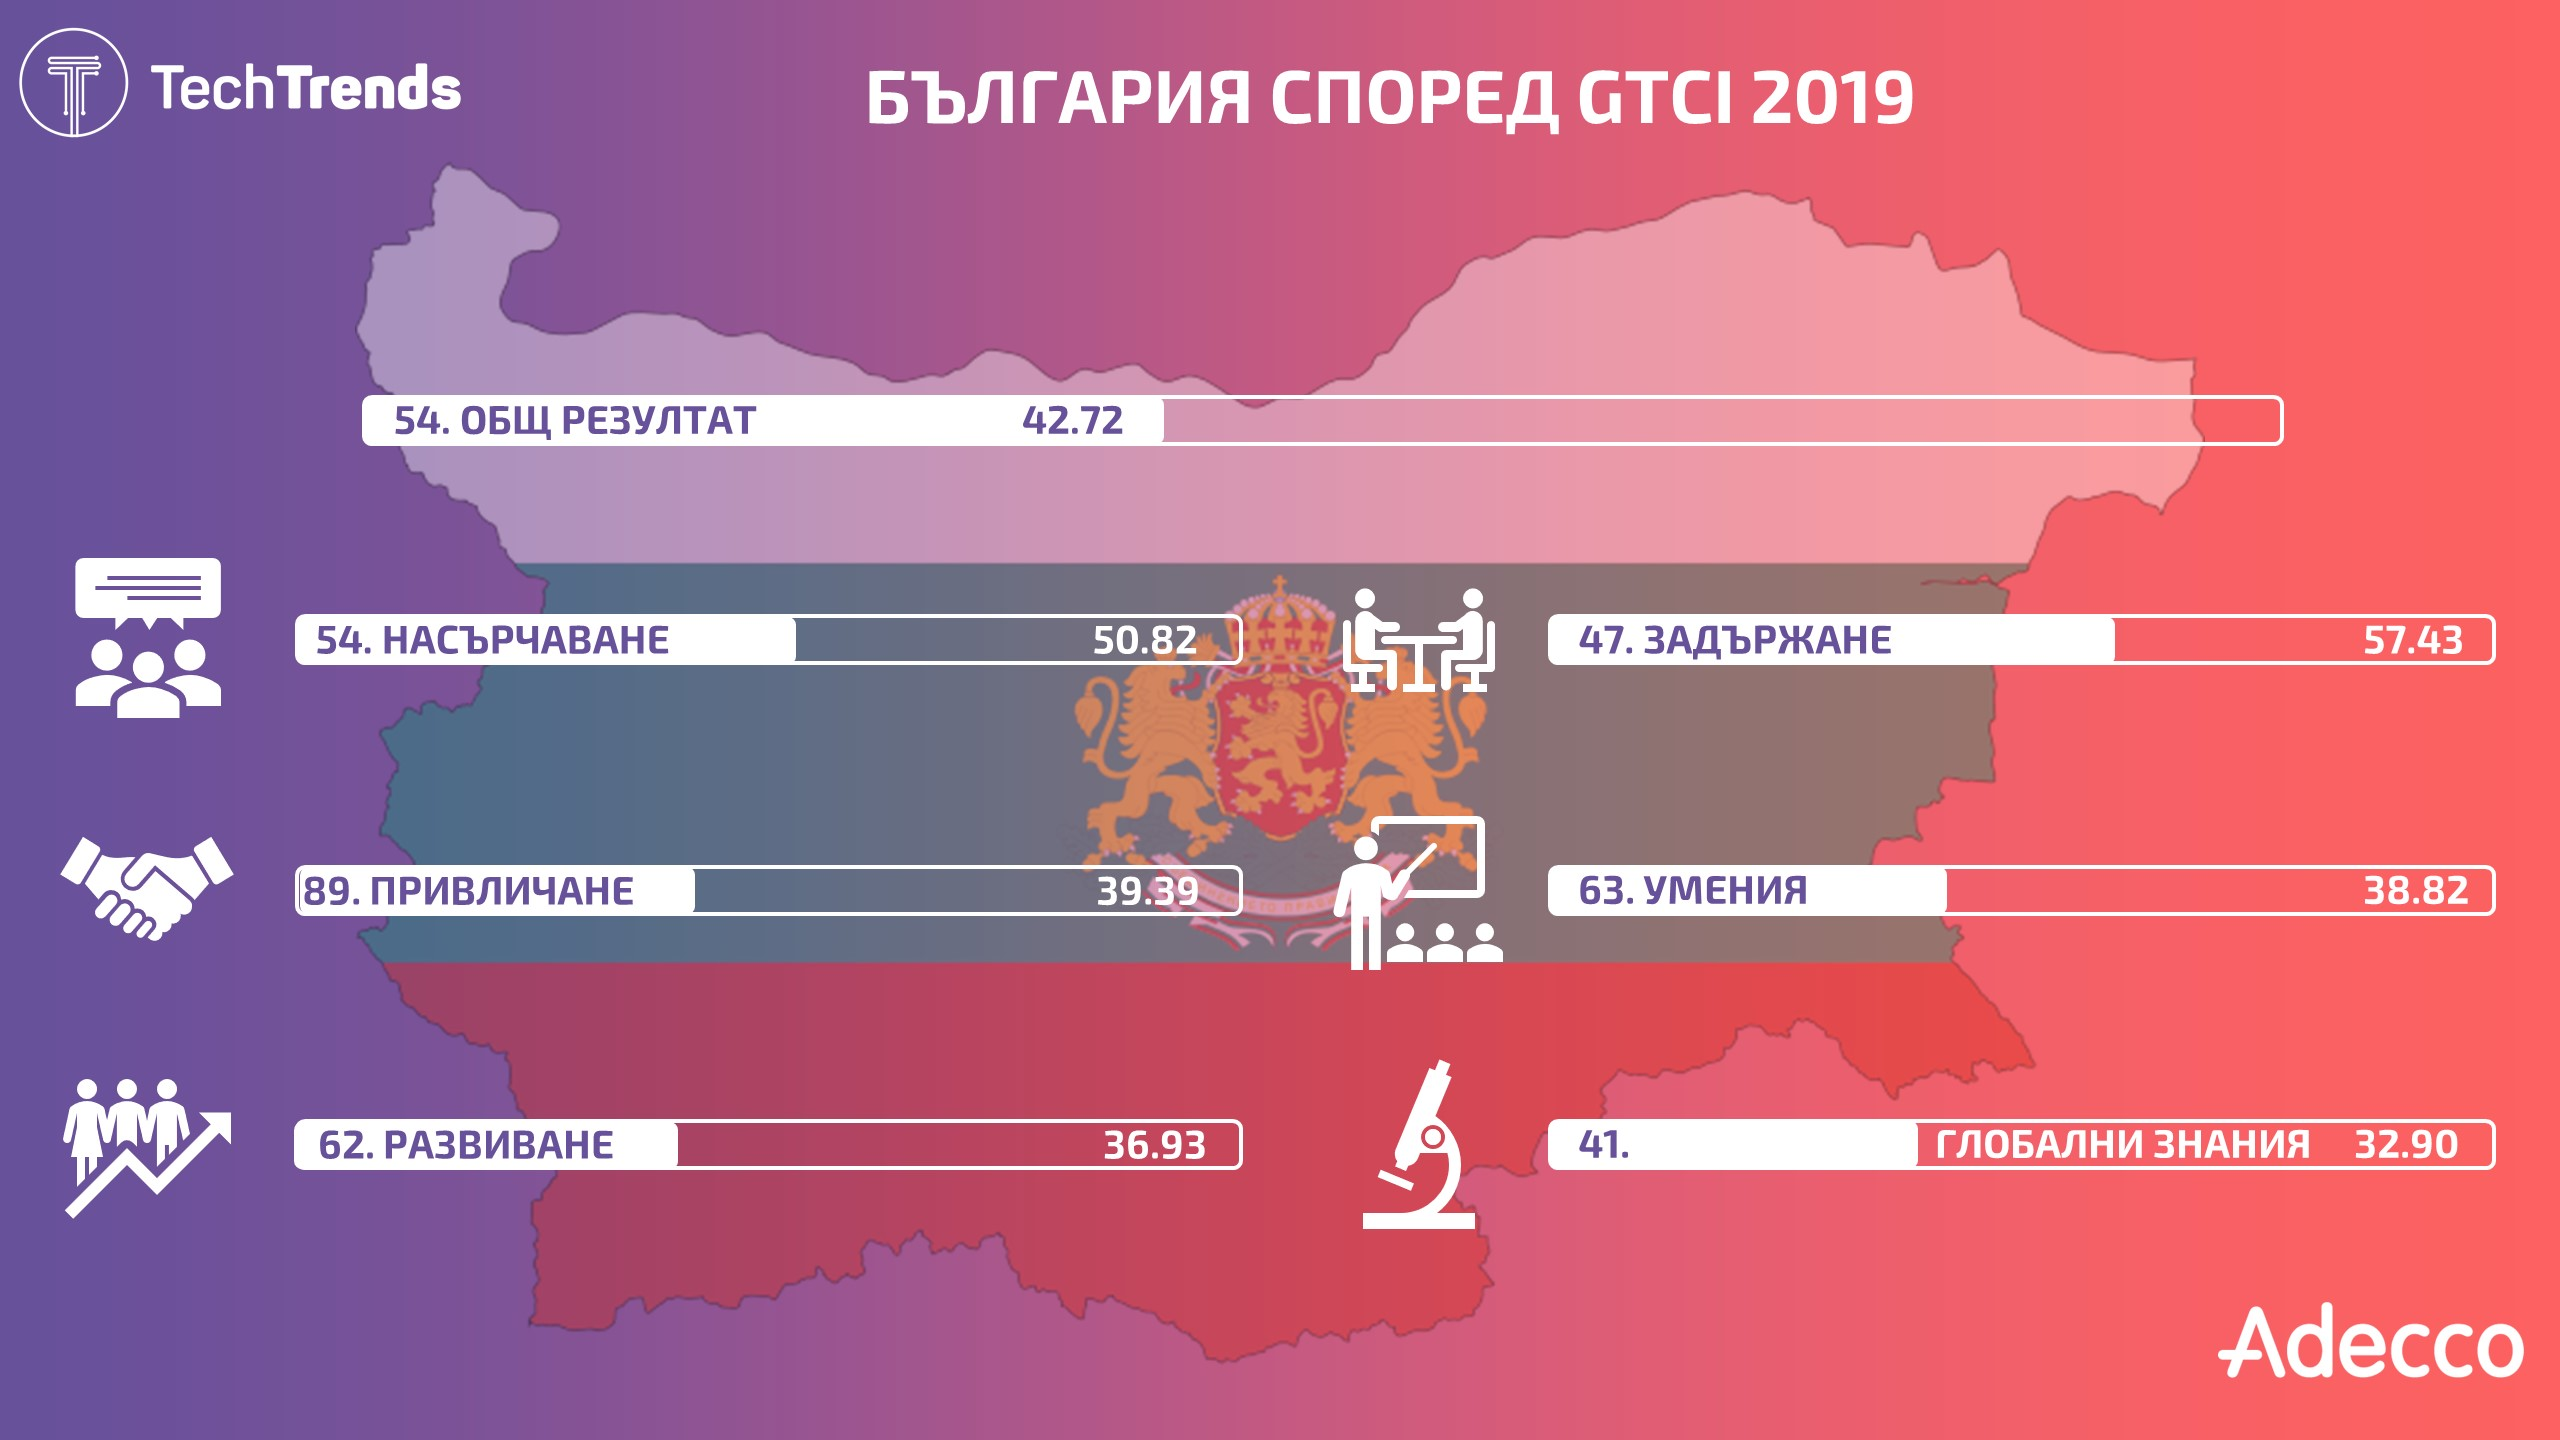 Bulgaria-Adecco-GTCI-Index-2019-Infographic